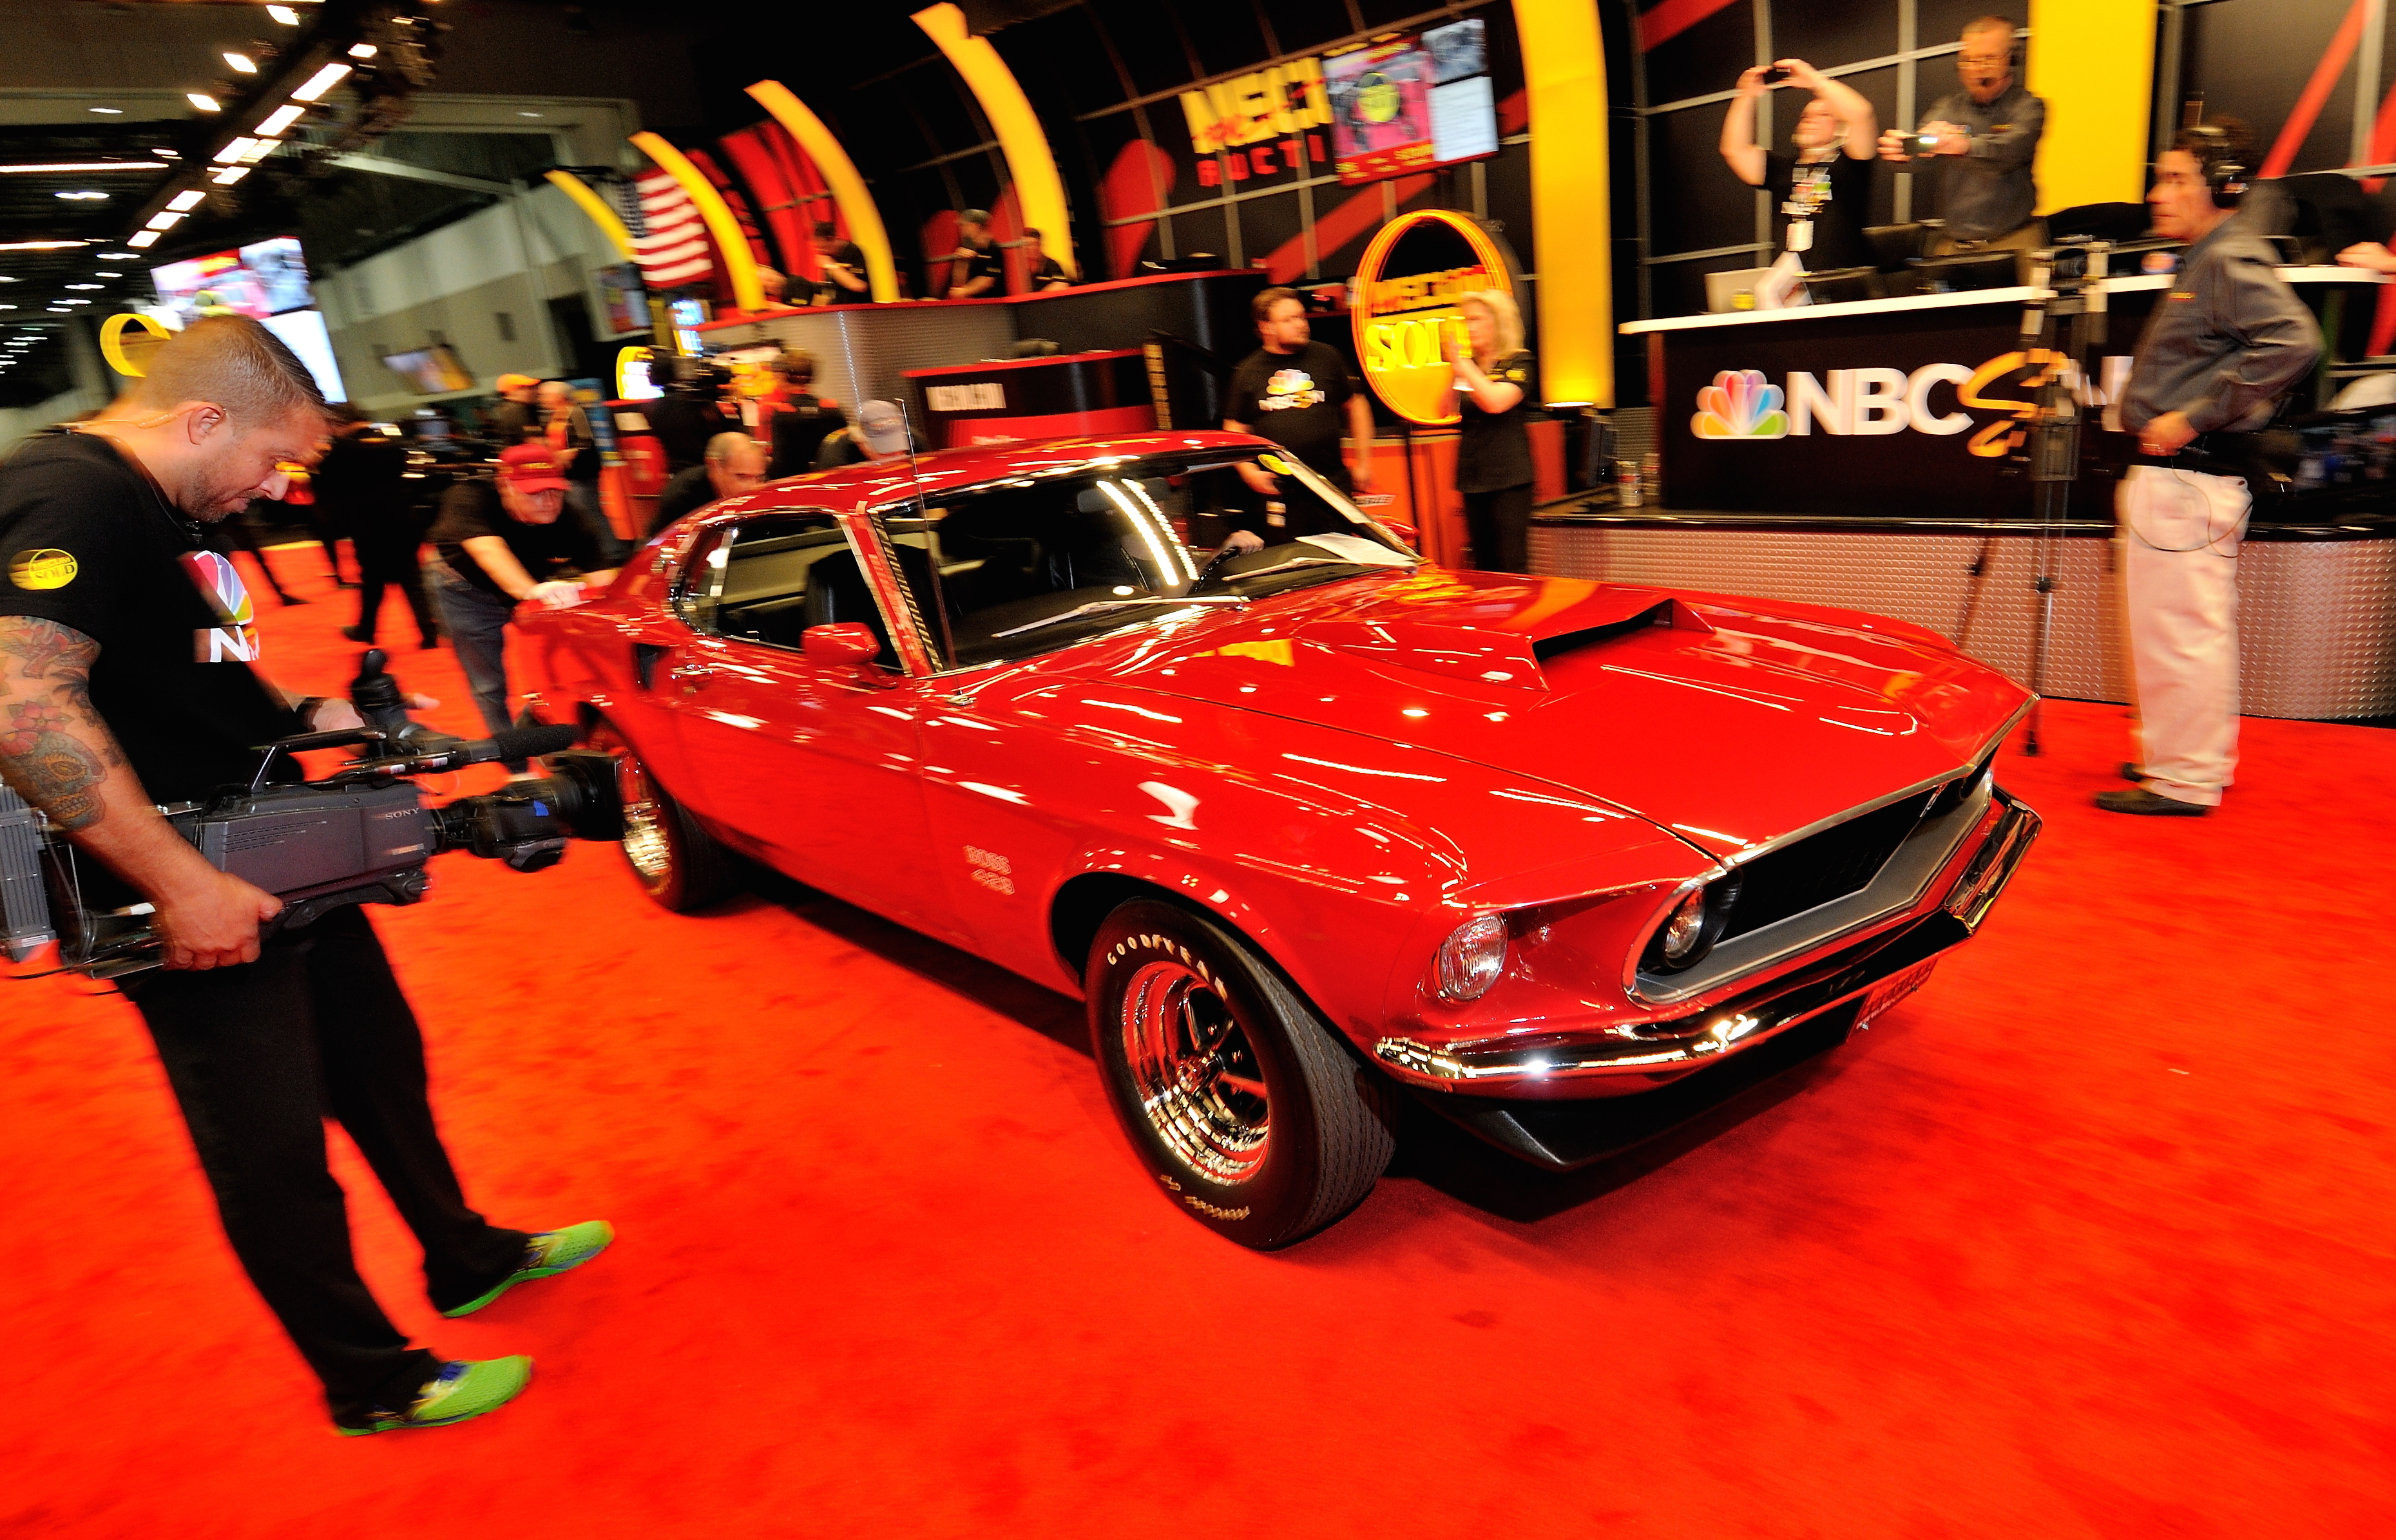 69 Boss 429 Mustang tops Mecum\'s KC auction - ClassicCars.com Journal